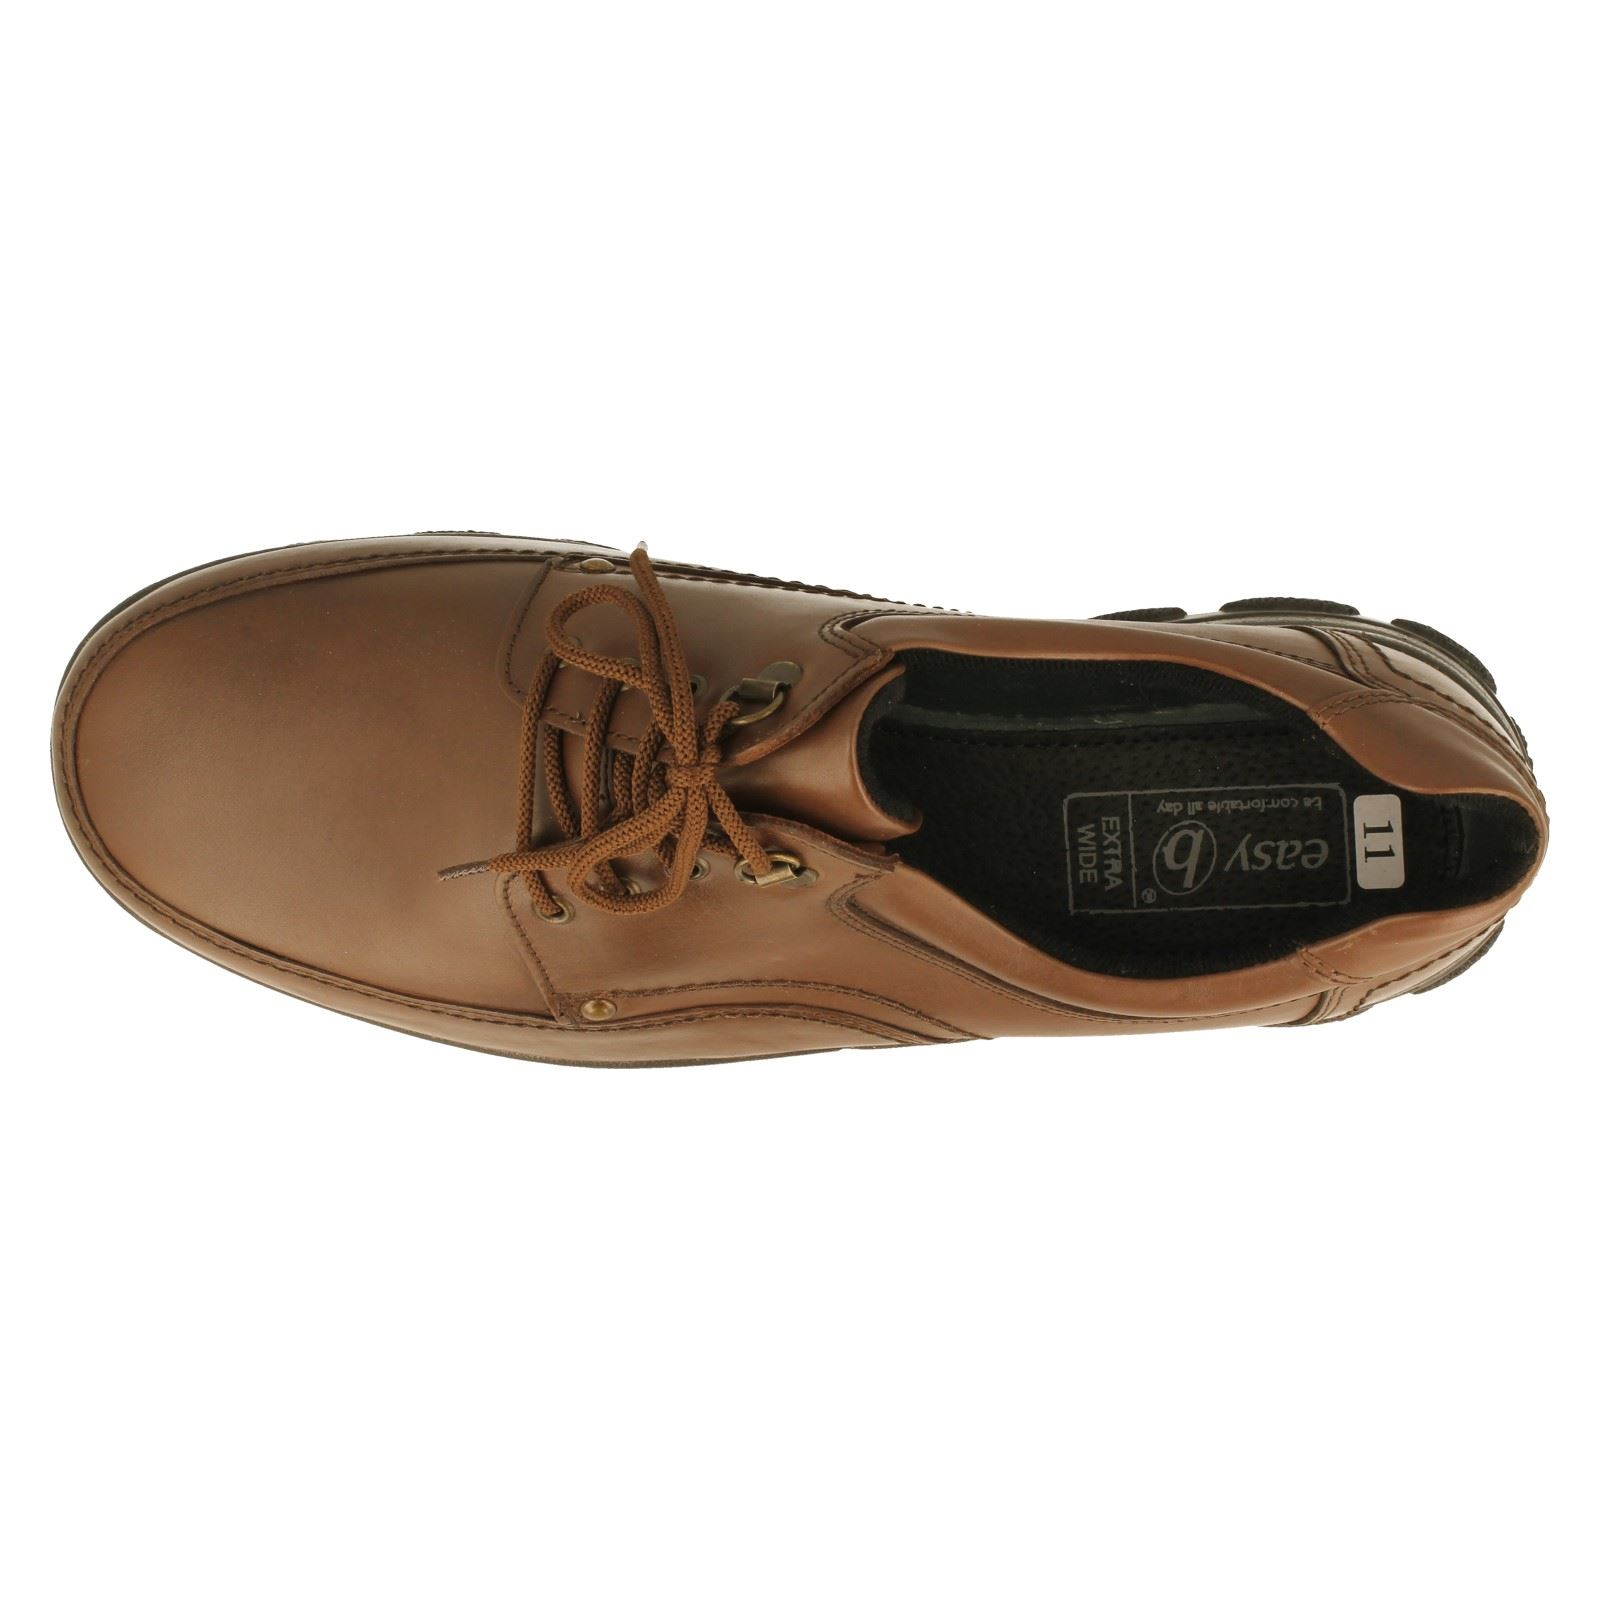 Wide Label Up Brown Fitting Shoes Lace Mens Db w Hebden PXZikTOu